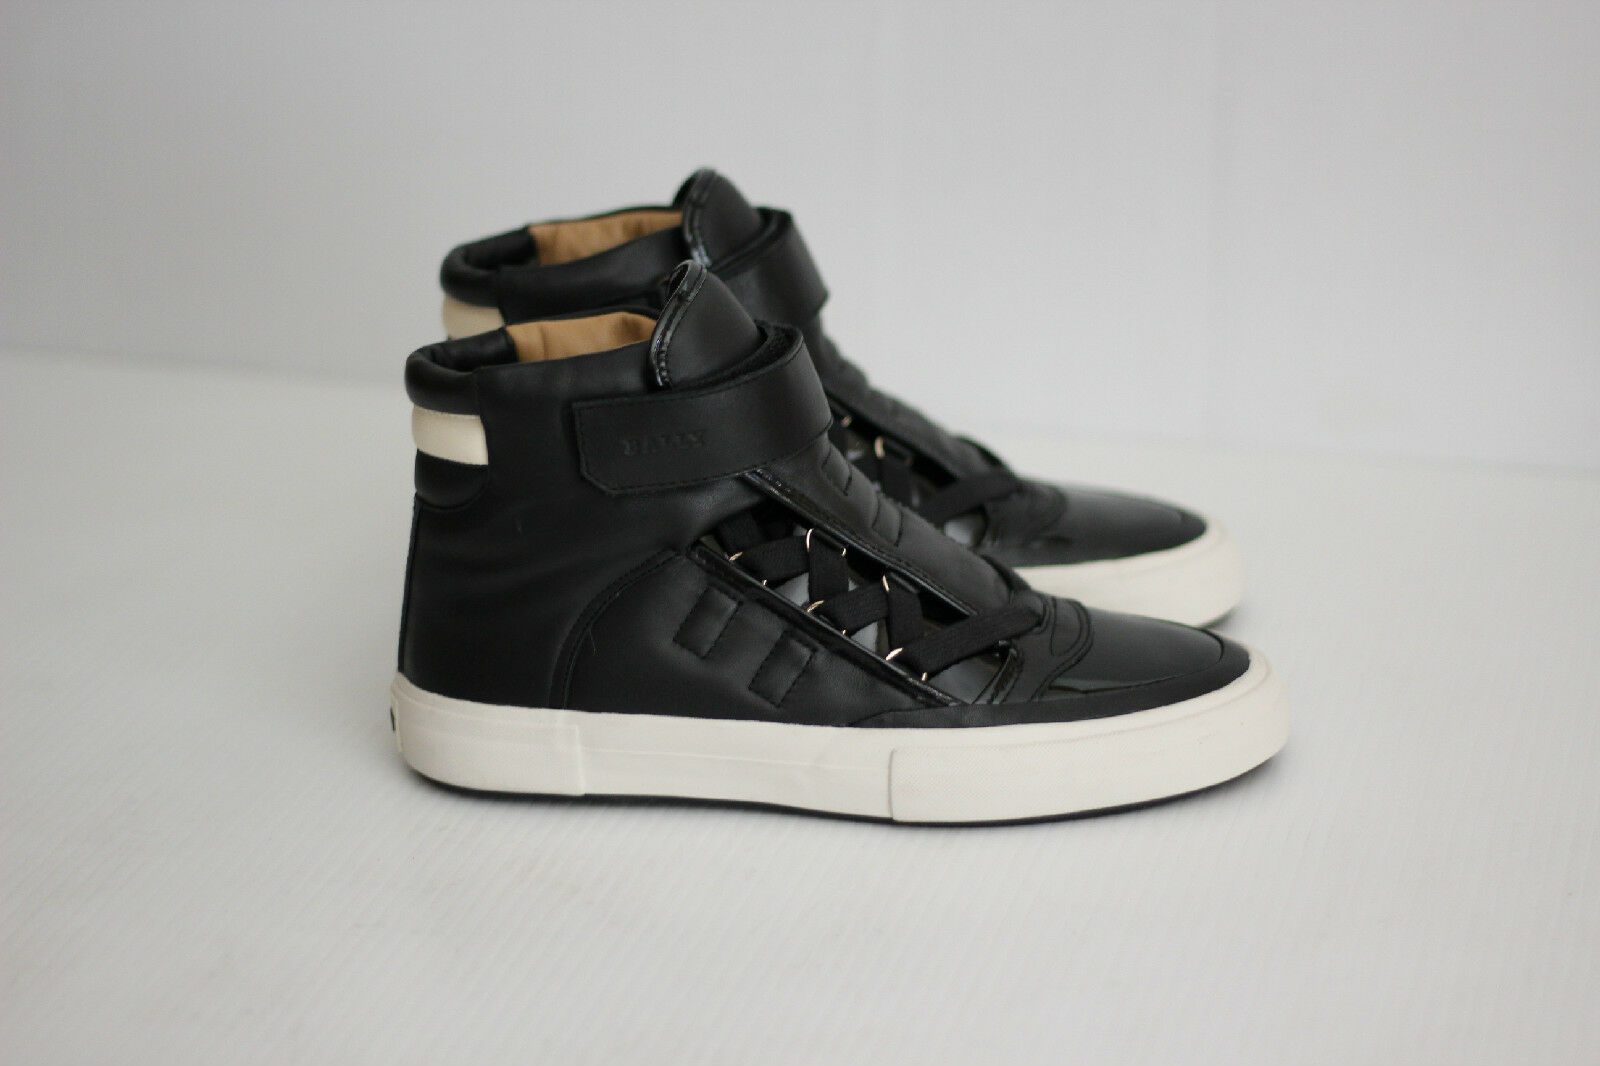 NEW Bally 'Gank Eartly' High Top Sneakers - Black / White - Size 6.5 D  (B14)